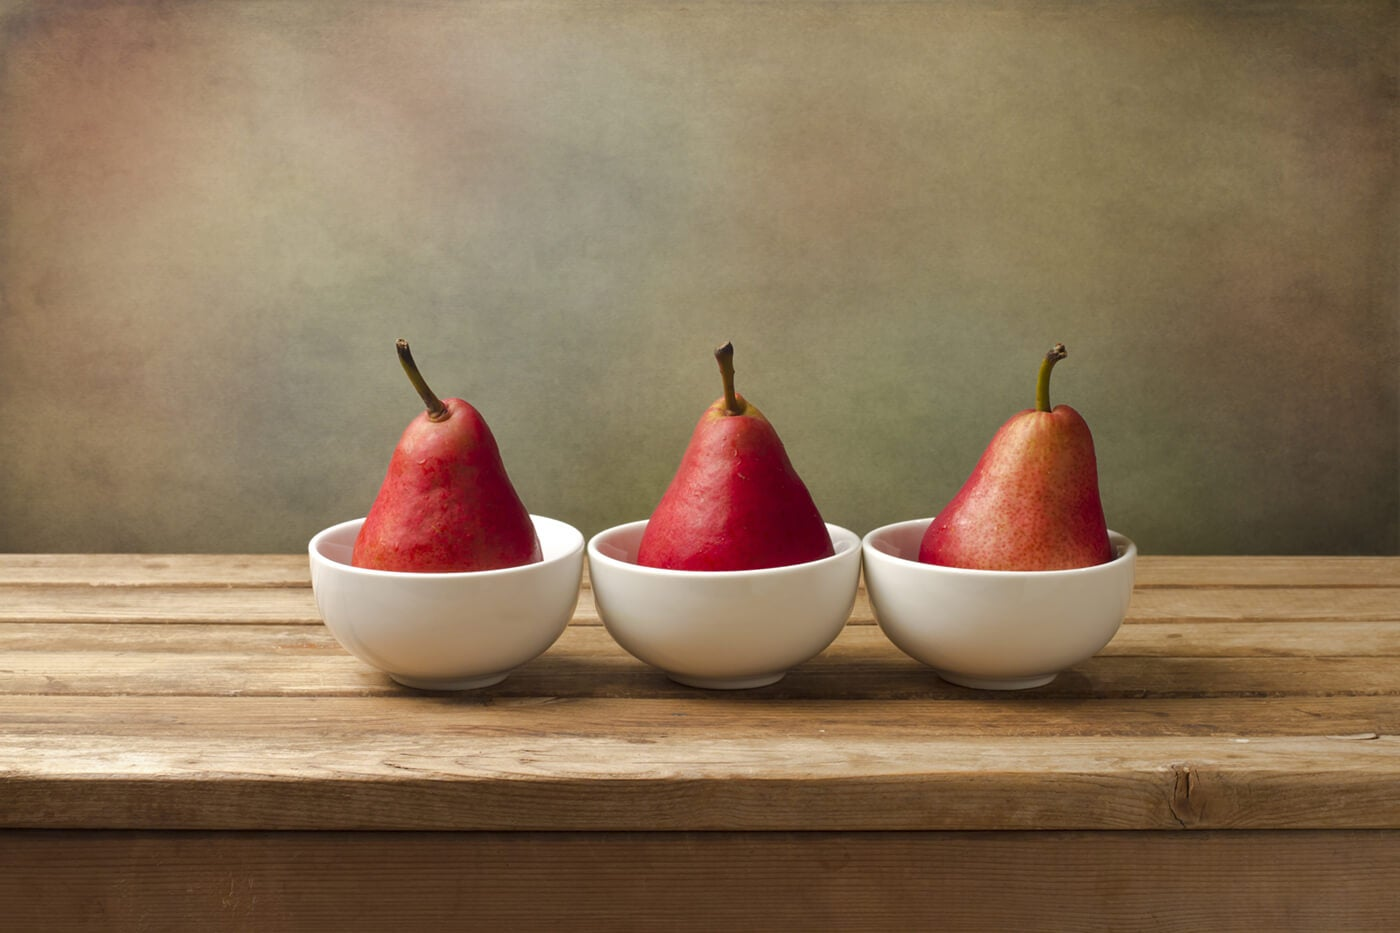 pears and bowls as fine art photo prints